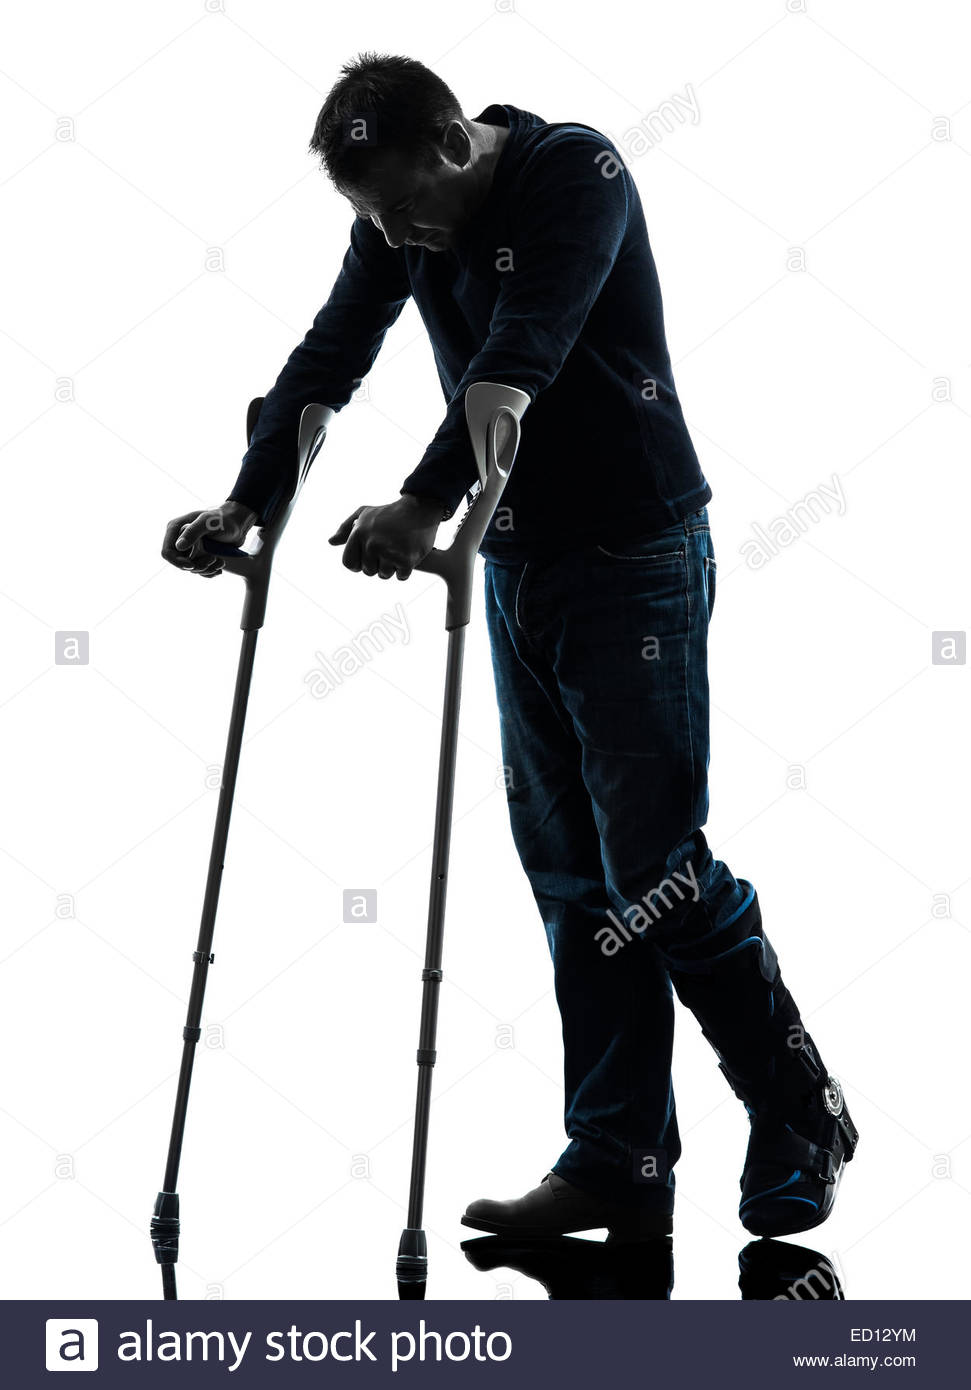 971x1390 One Man Injured Man Walking Sad With Crutches In Silhouette Studio